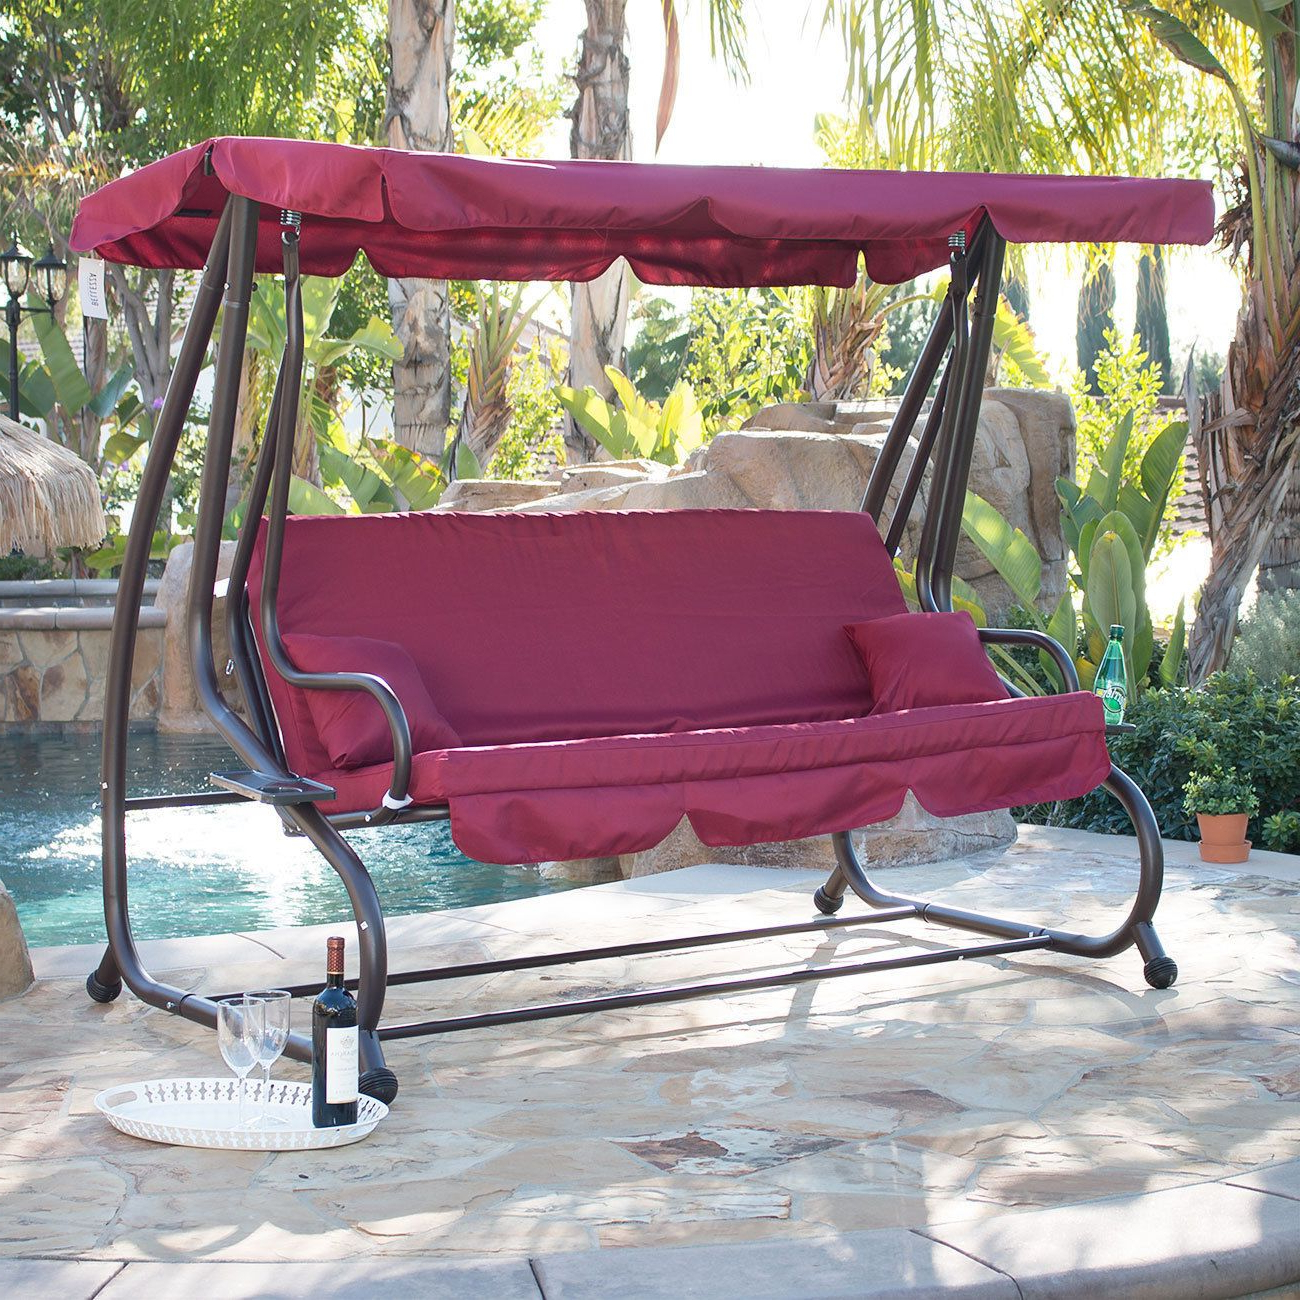 Fashionable Outdoor Canopy Hammock Porch Swings With Stand Throughout Outdoor Canopy Swing/bed Patio Deck Garden Porch Seat (Gallery 12 of 30)